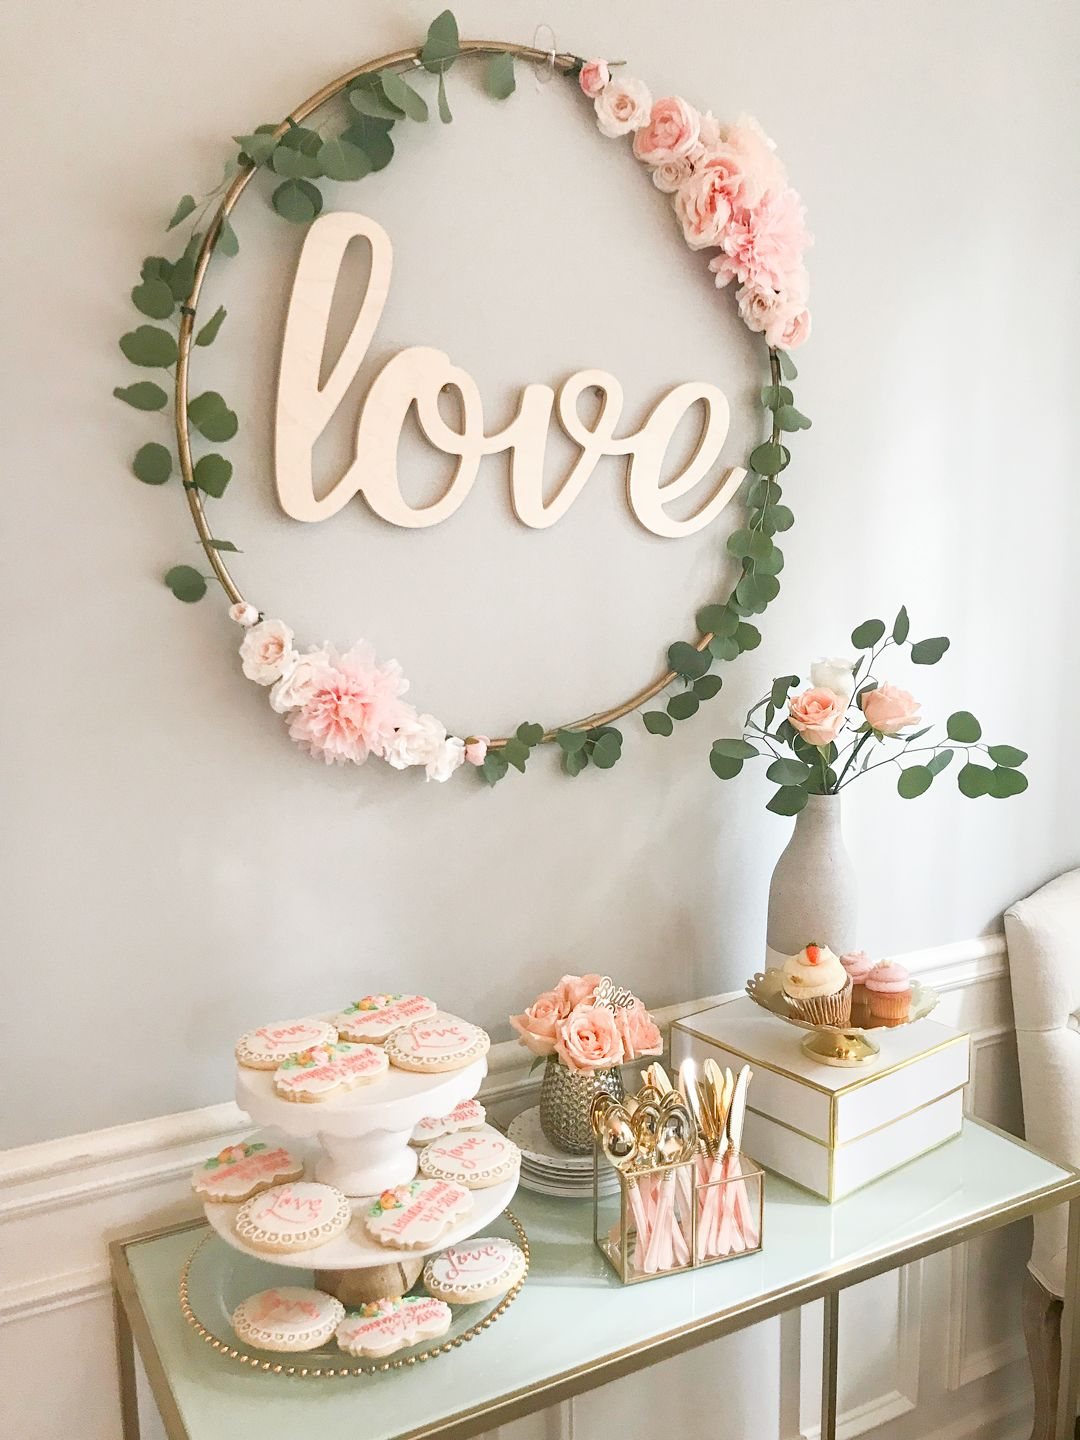 Diy Hula Hoop Love Sign Blush And Gold Bridal Shower Decor